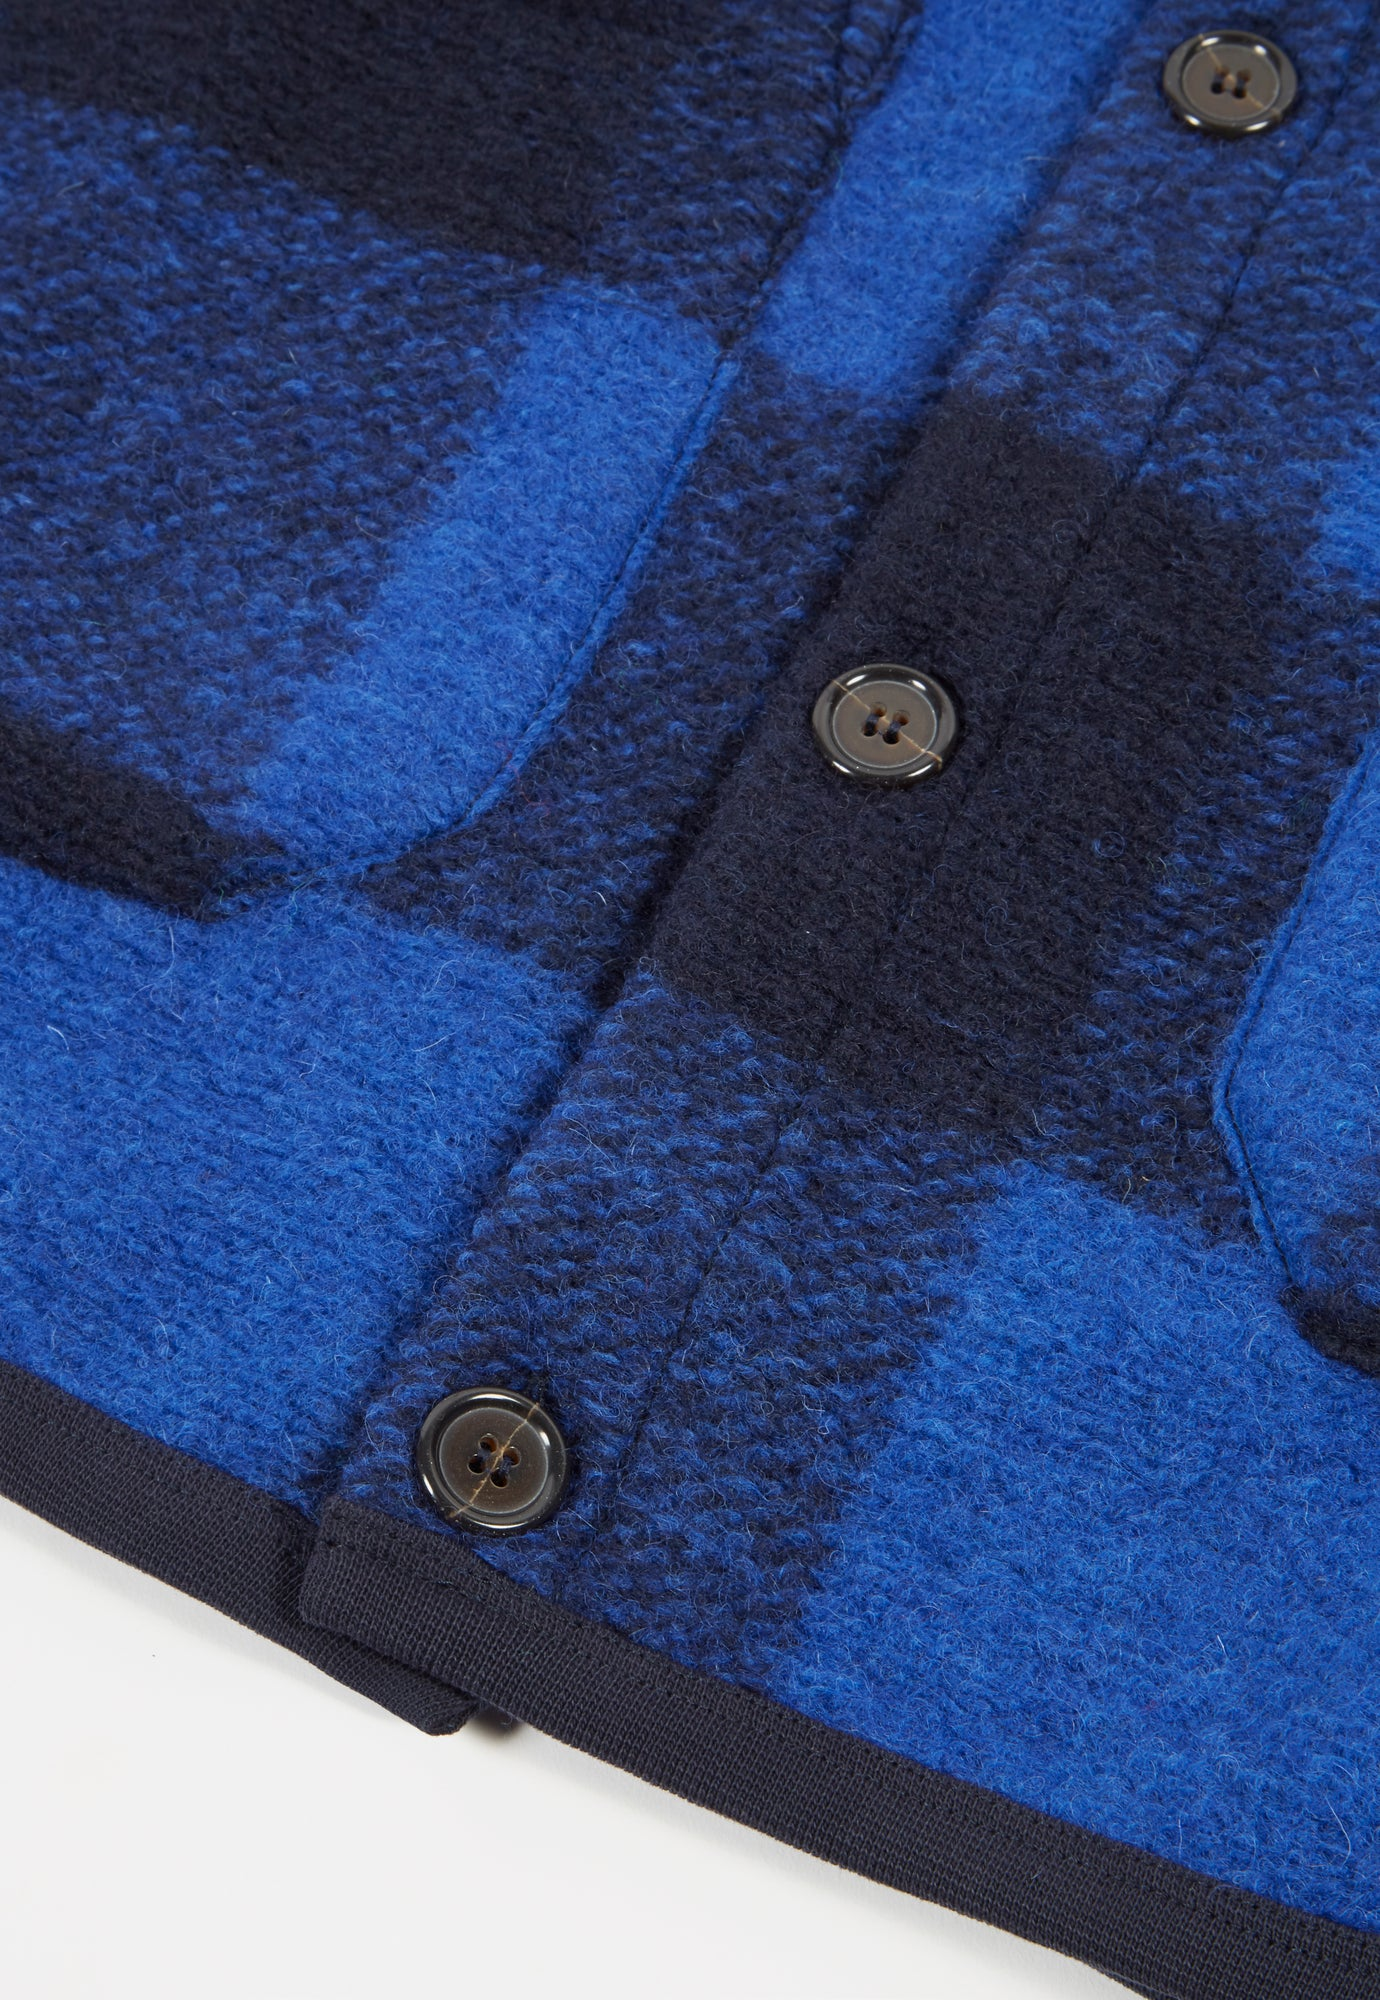 Universal Works Cardigan in Blue Check Wool Fleece